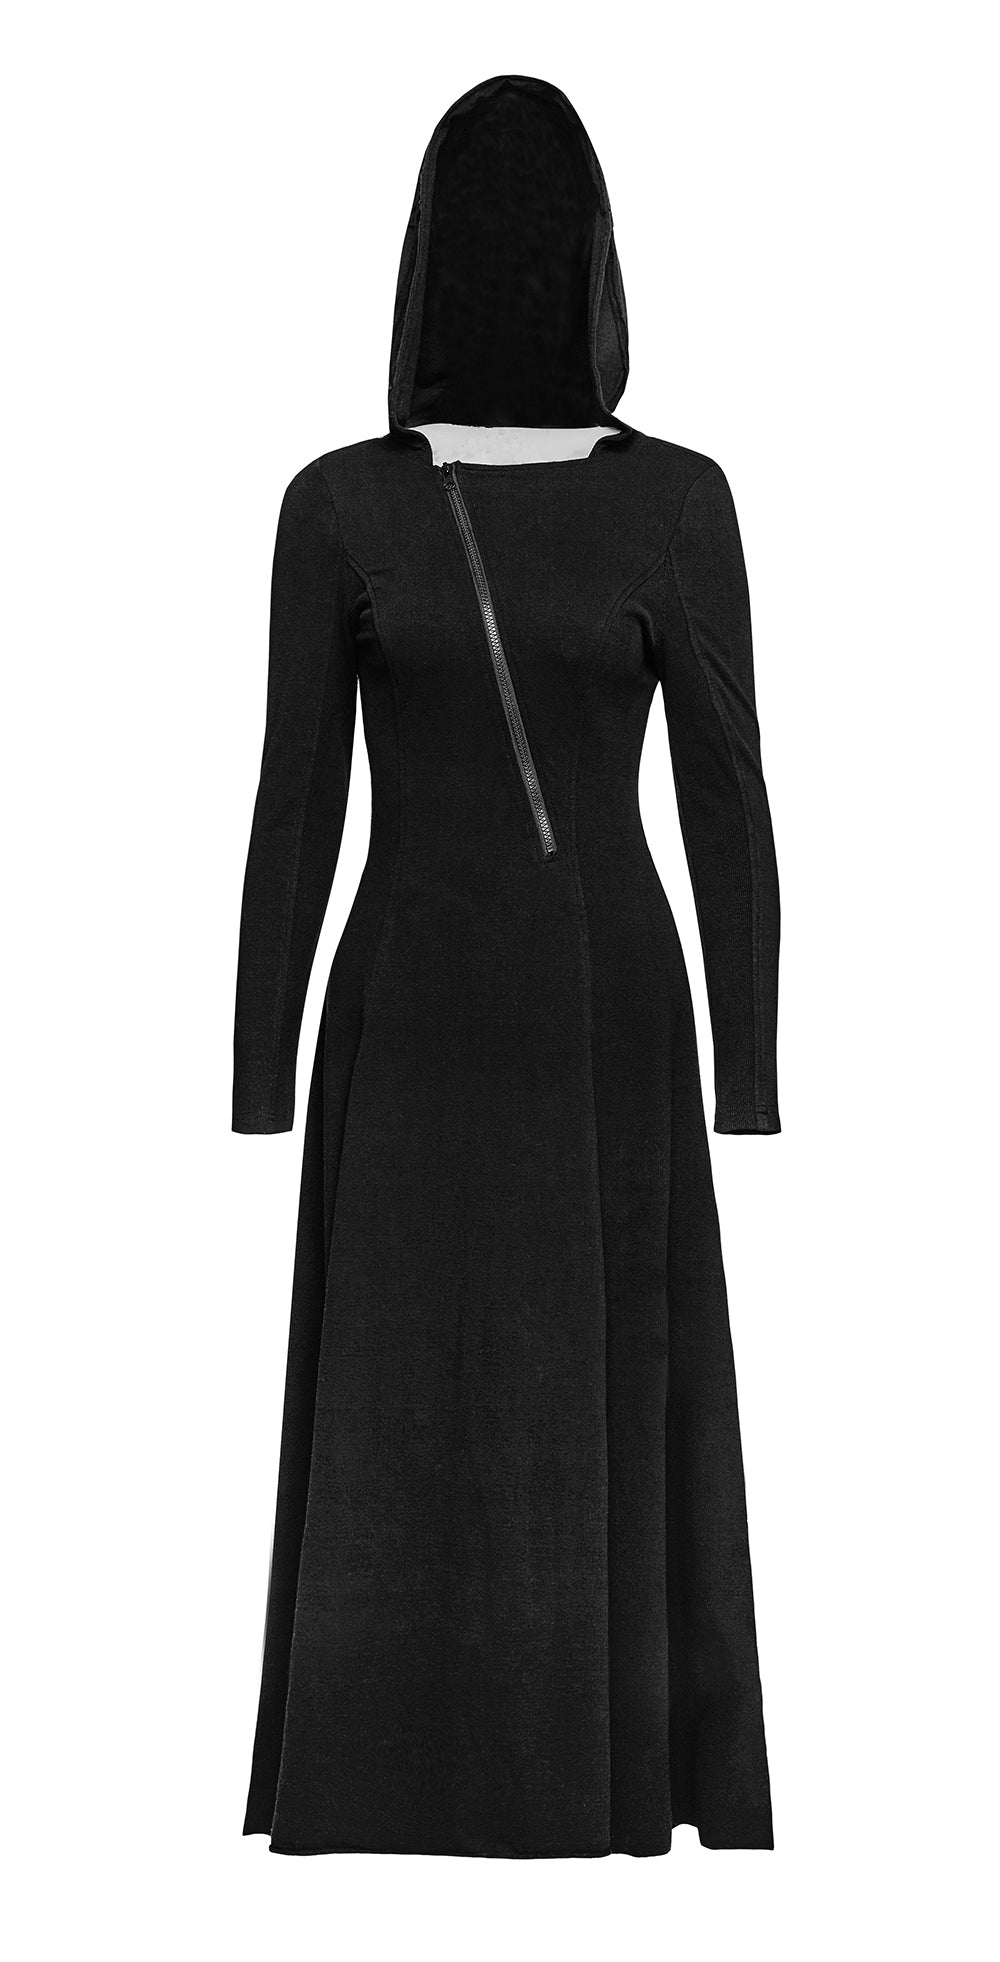 Punk Rave Black Sun Hooded Dress